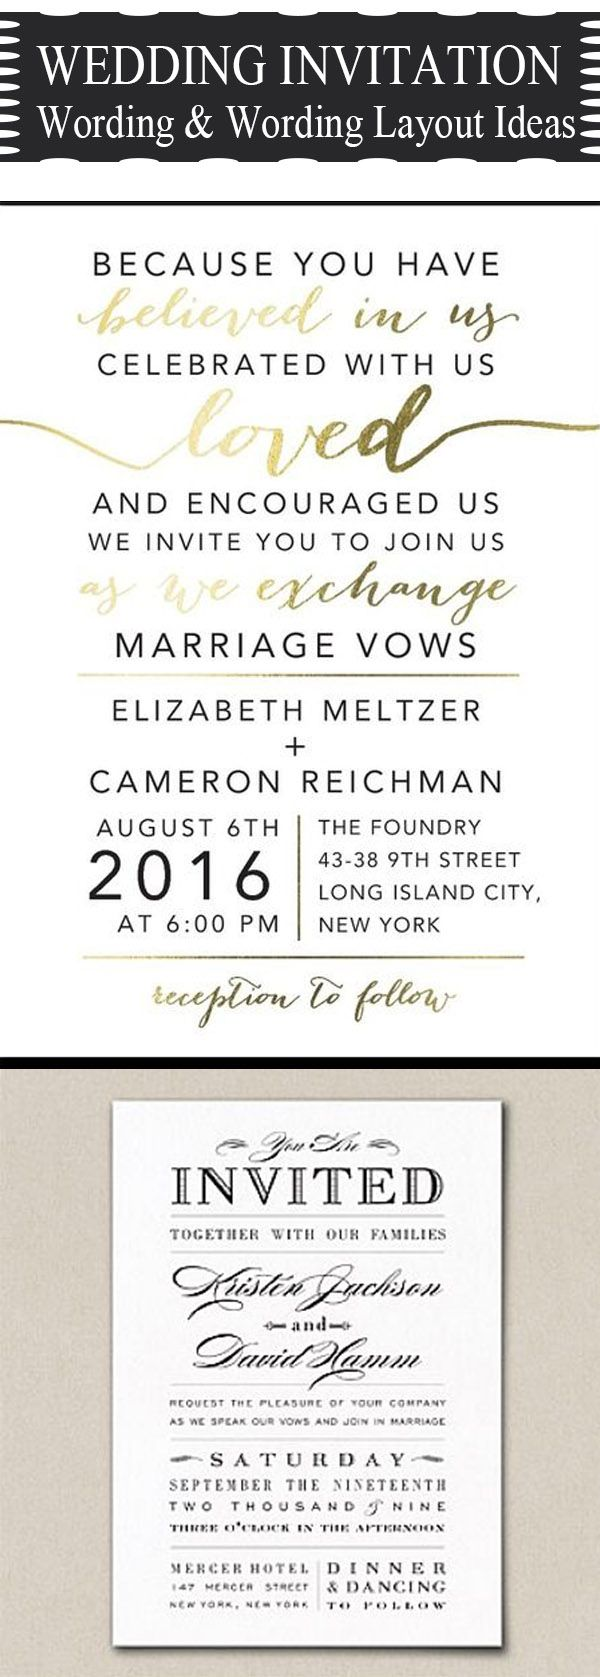 best ideas about wedding invitation wording on   how, invitation samples